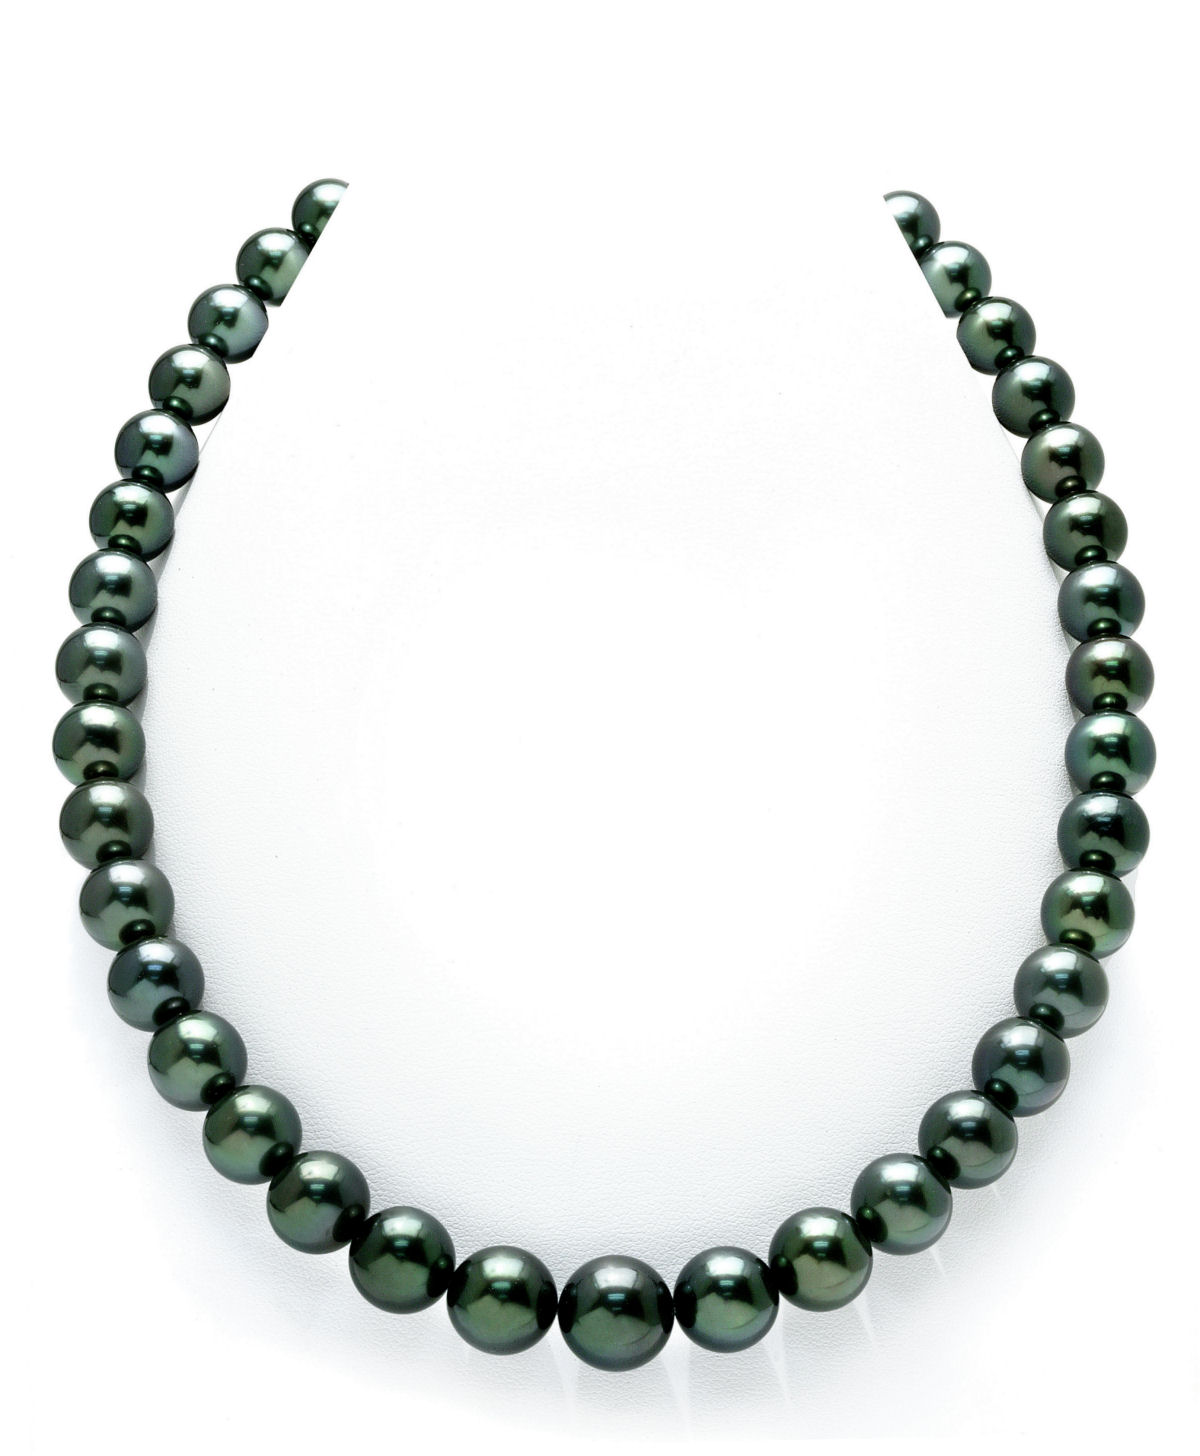 10-12mm Tahitian South Sea Pearl Necklace - AAAA Quality